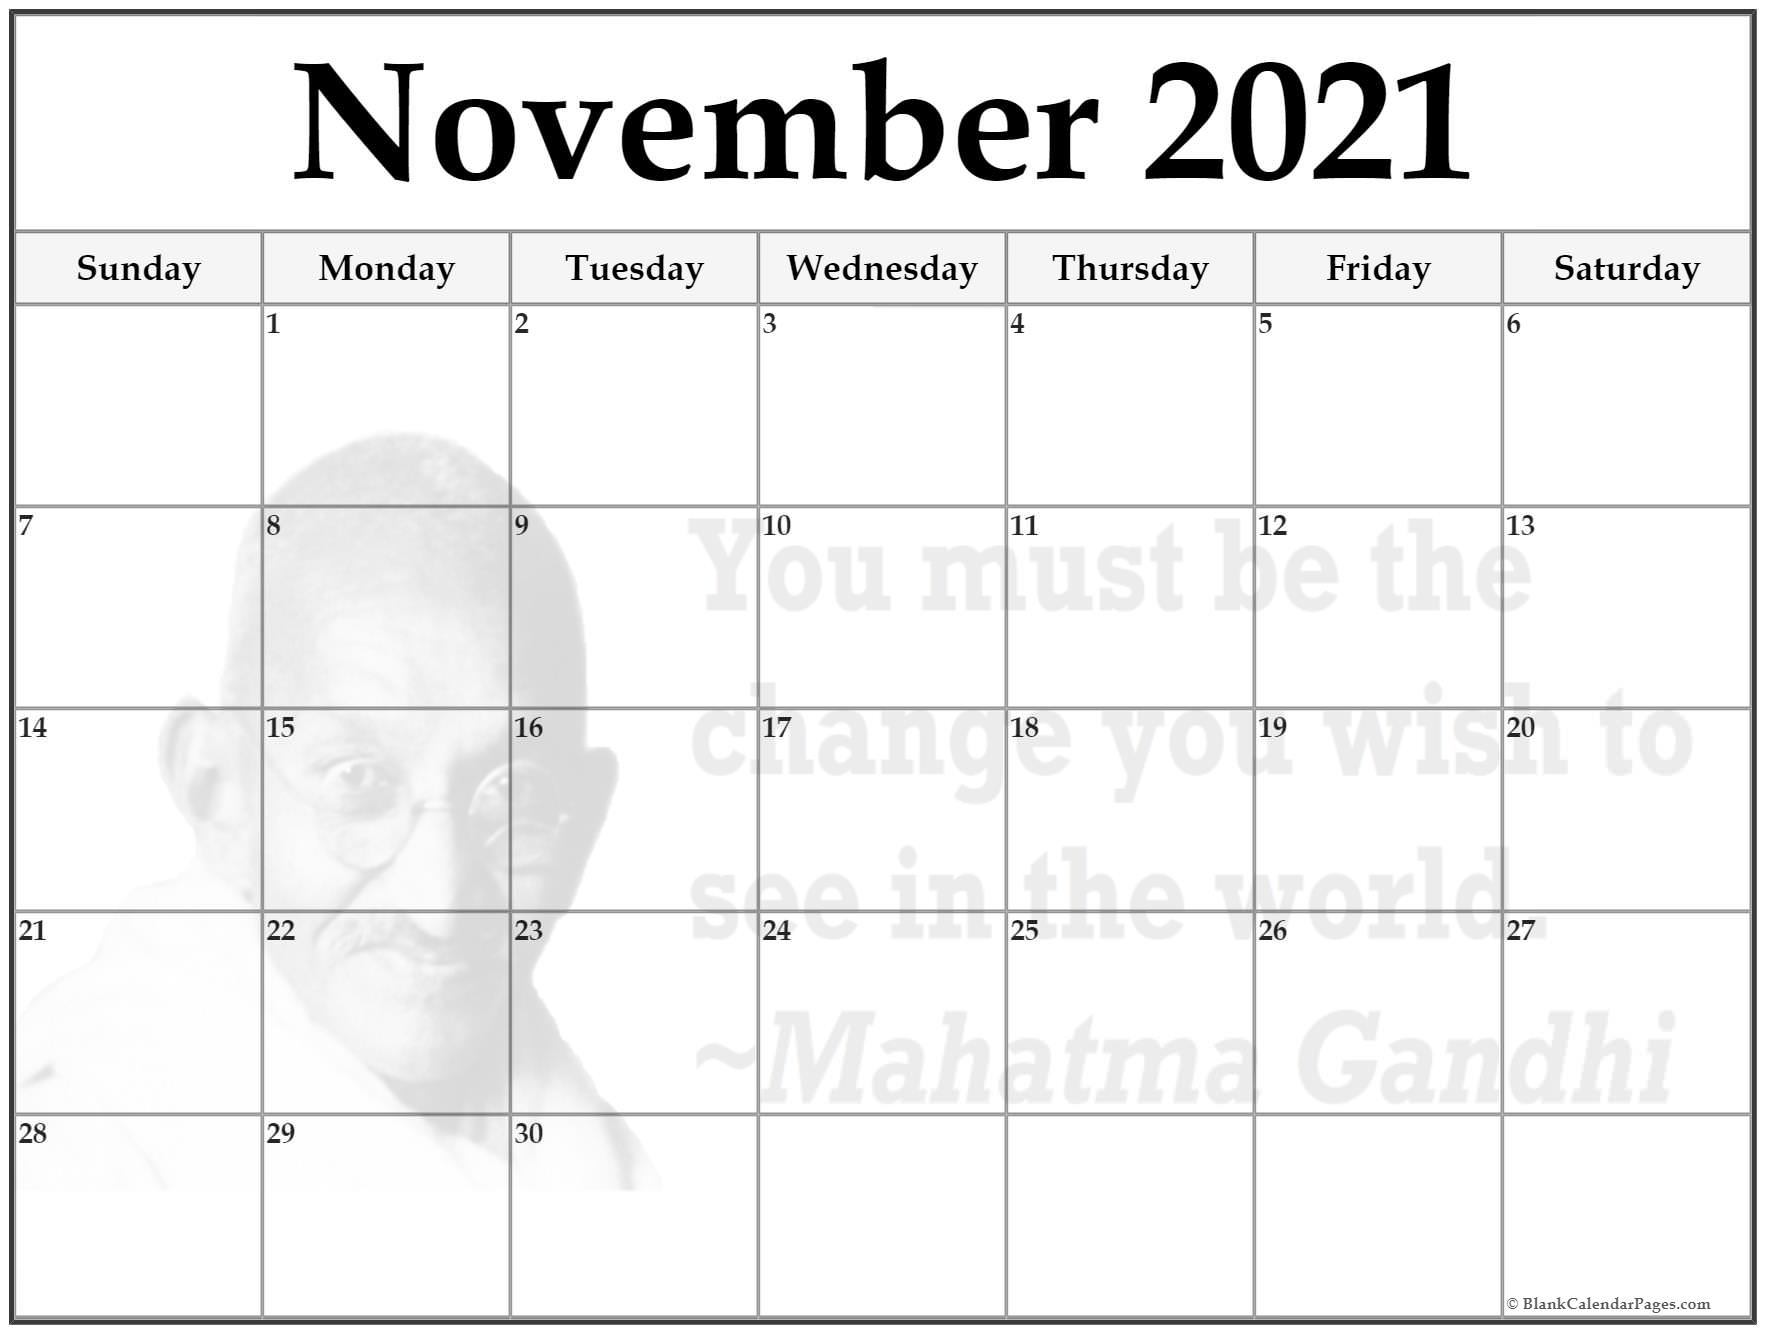 November 2021 gandhi calendar. You must be the change you wish to see in the world. ~Mahatma Gandhi